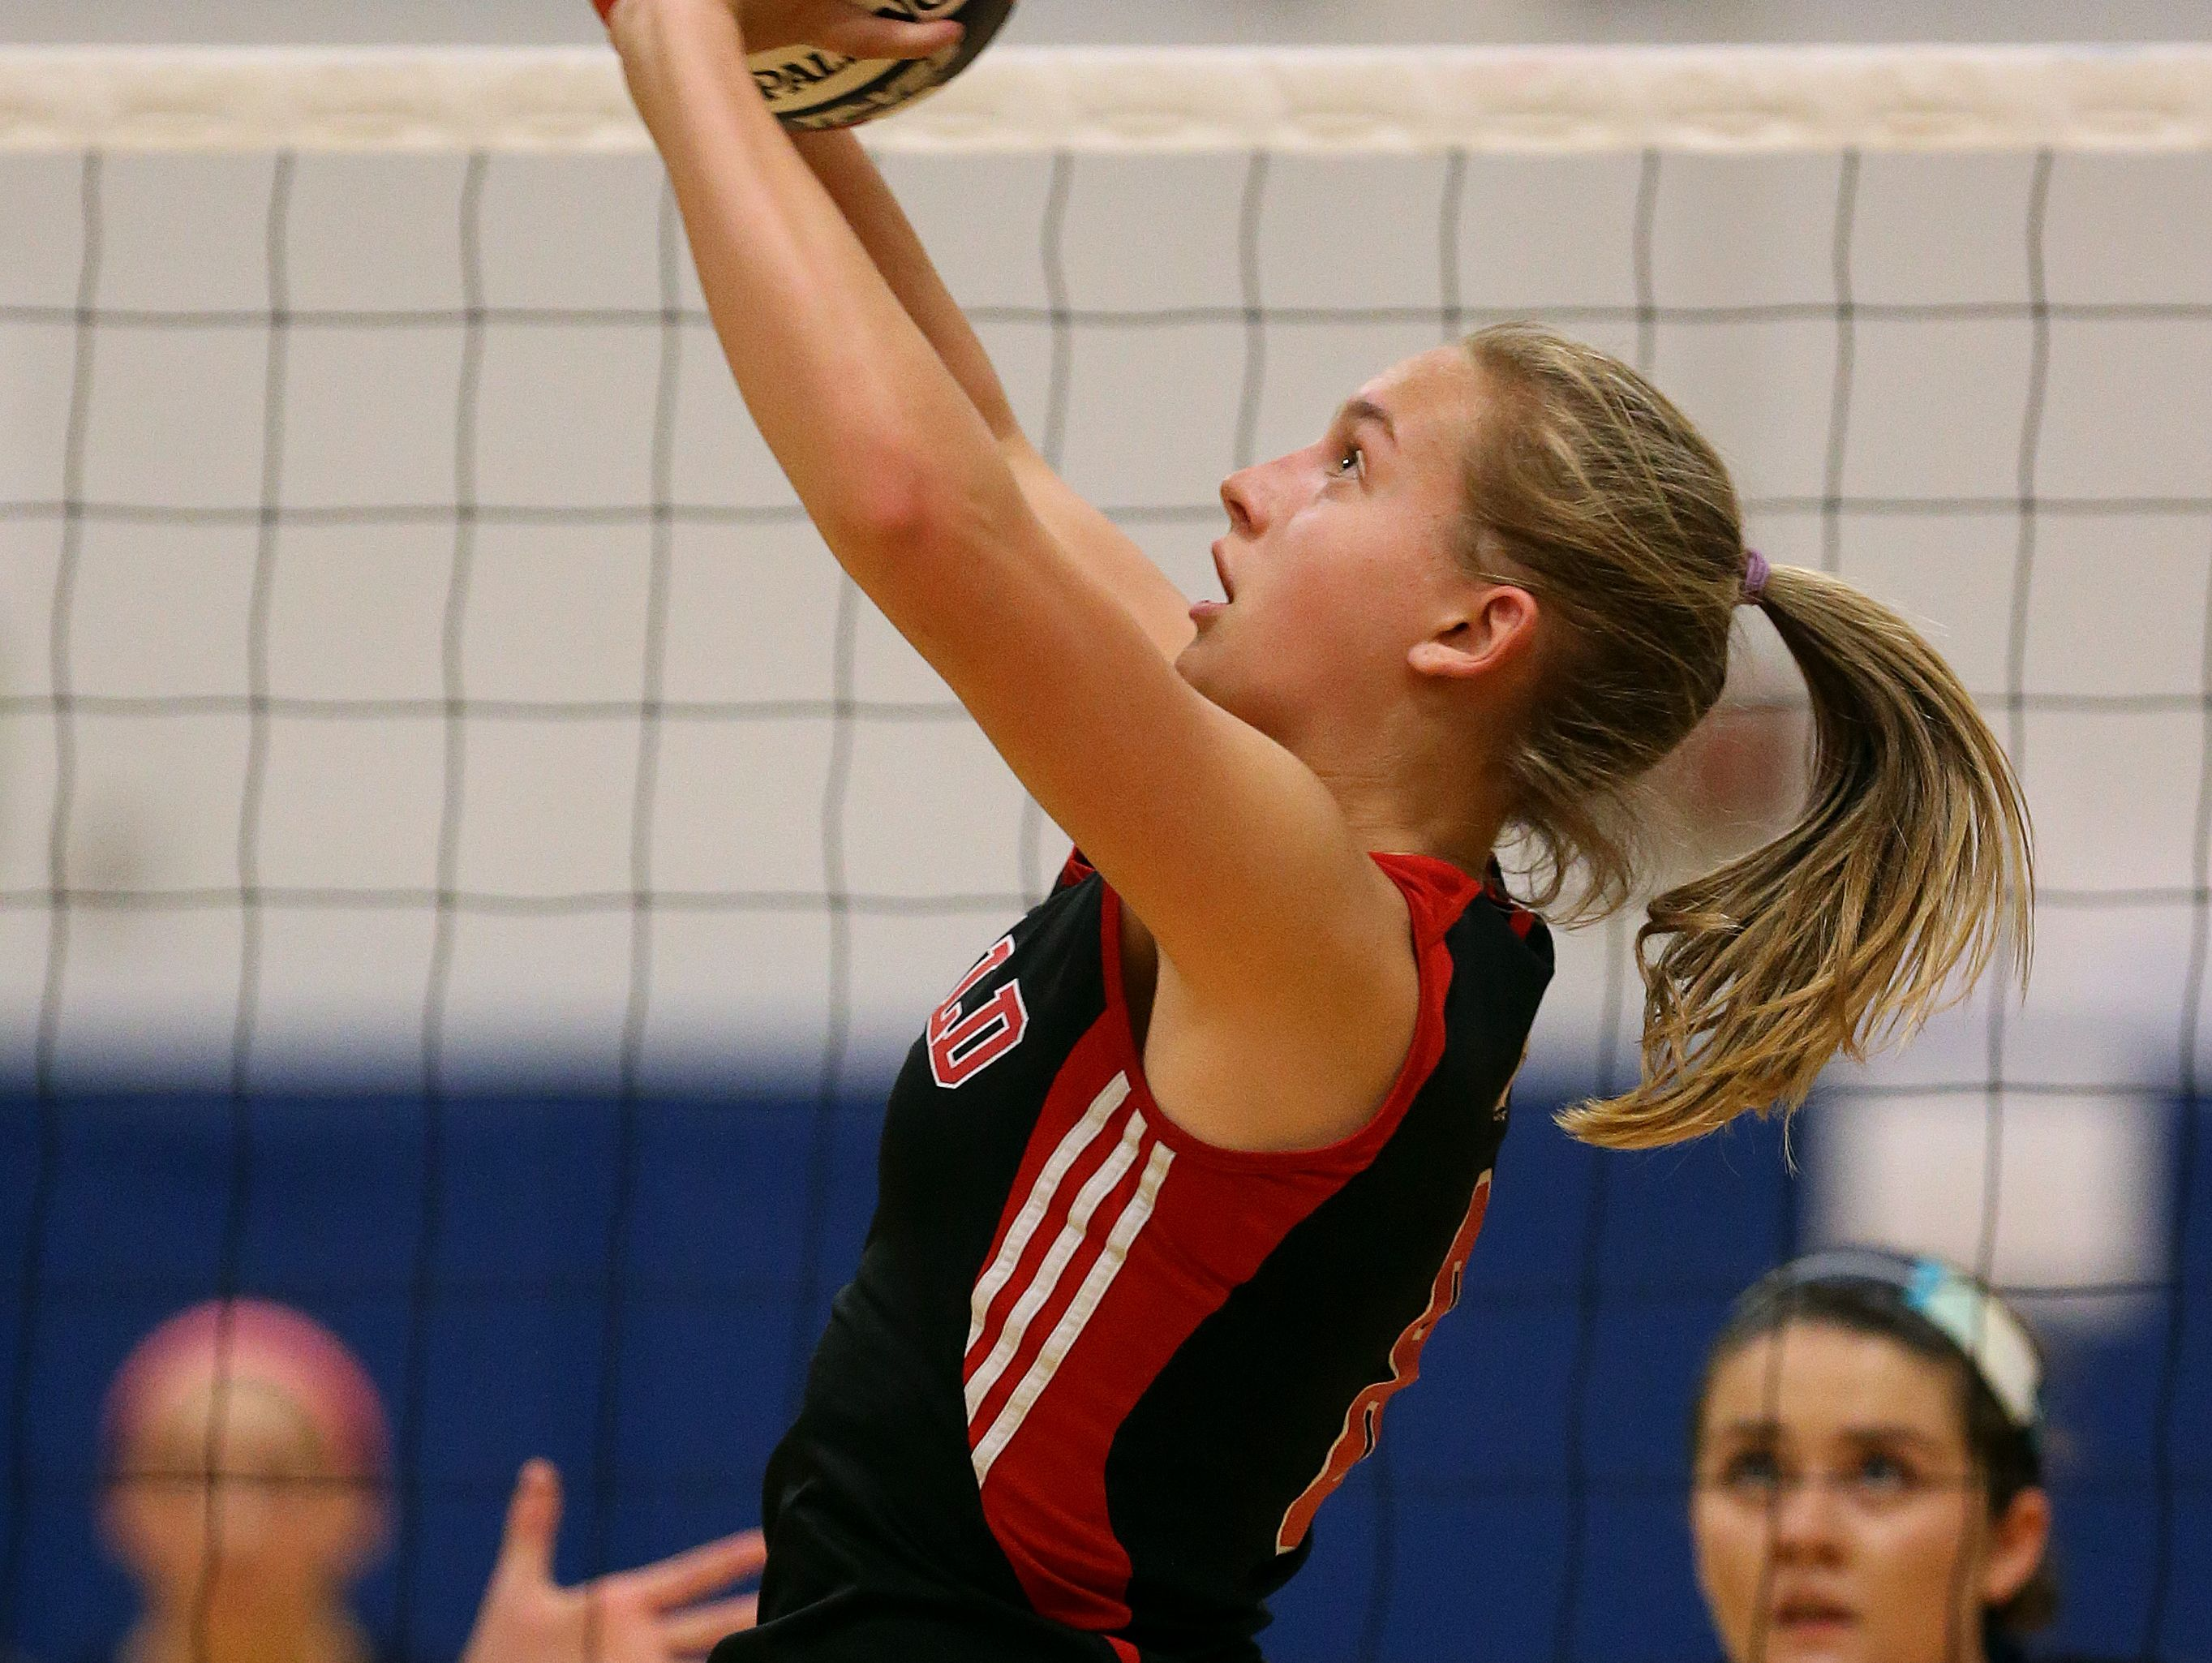 Penfield's Alea Steigerwald sets the ball near the net.